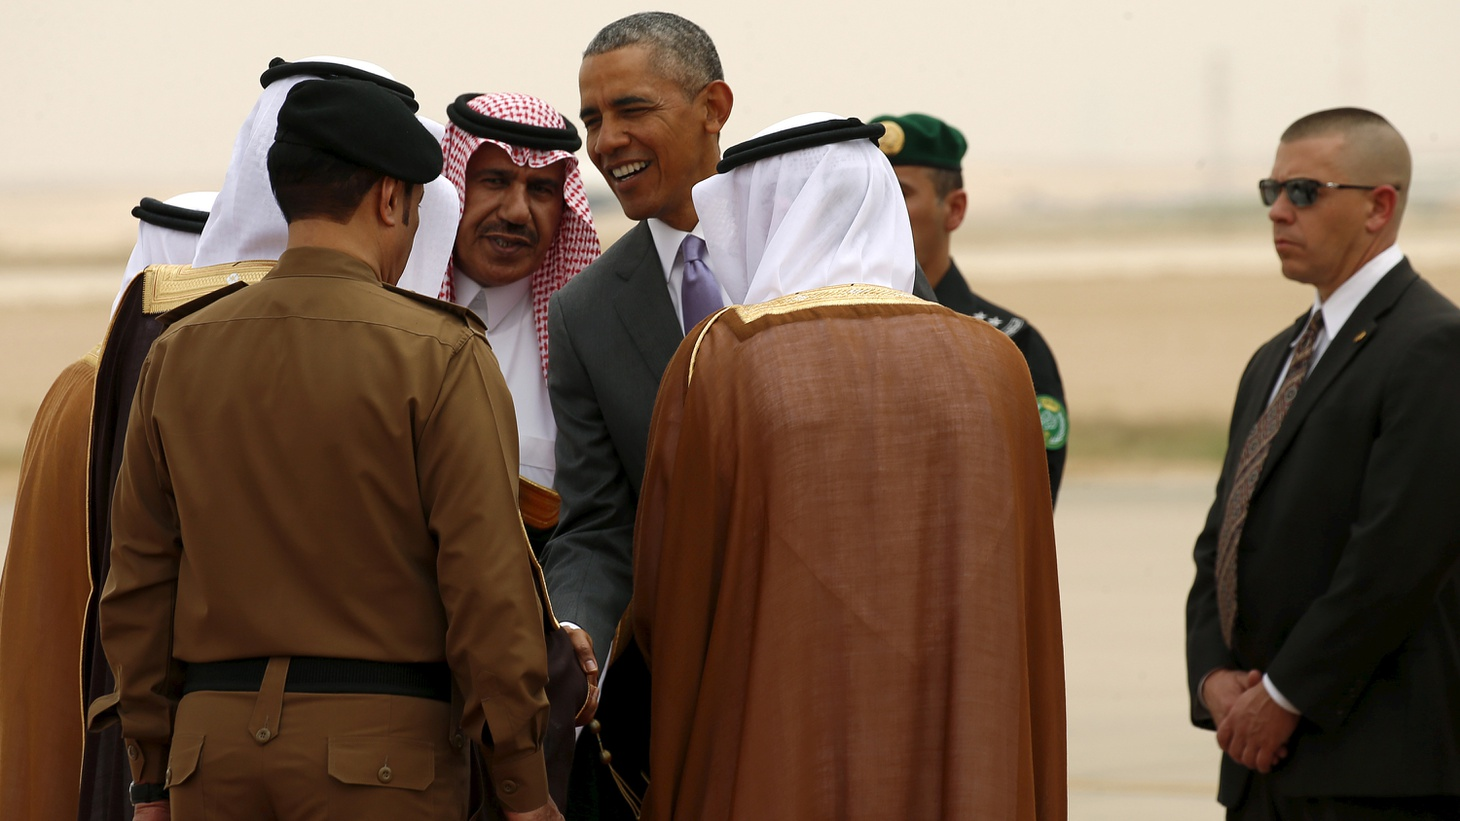 """President Obama is in Saudi Arabia today at a tense moment in USSaudi relations. The long-standing alliance is based on oil and security concerns, but now is being frayed by diverging goals in Middle East conflicts, by Obama's recent reference to the Saudis as """"free riders"""" and renewed calls from Congress to allow Americans sue them for 9/11."""